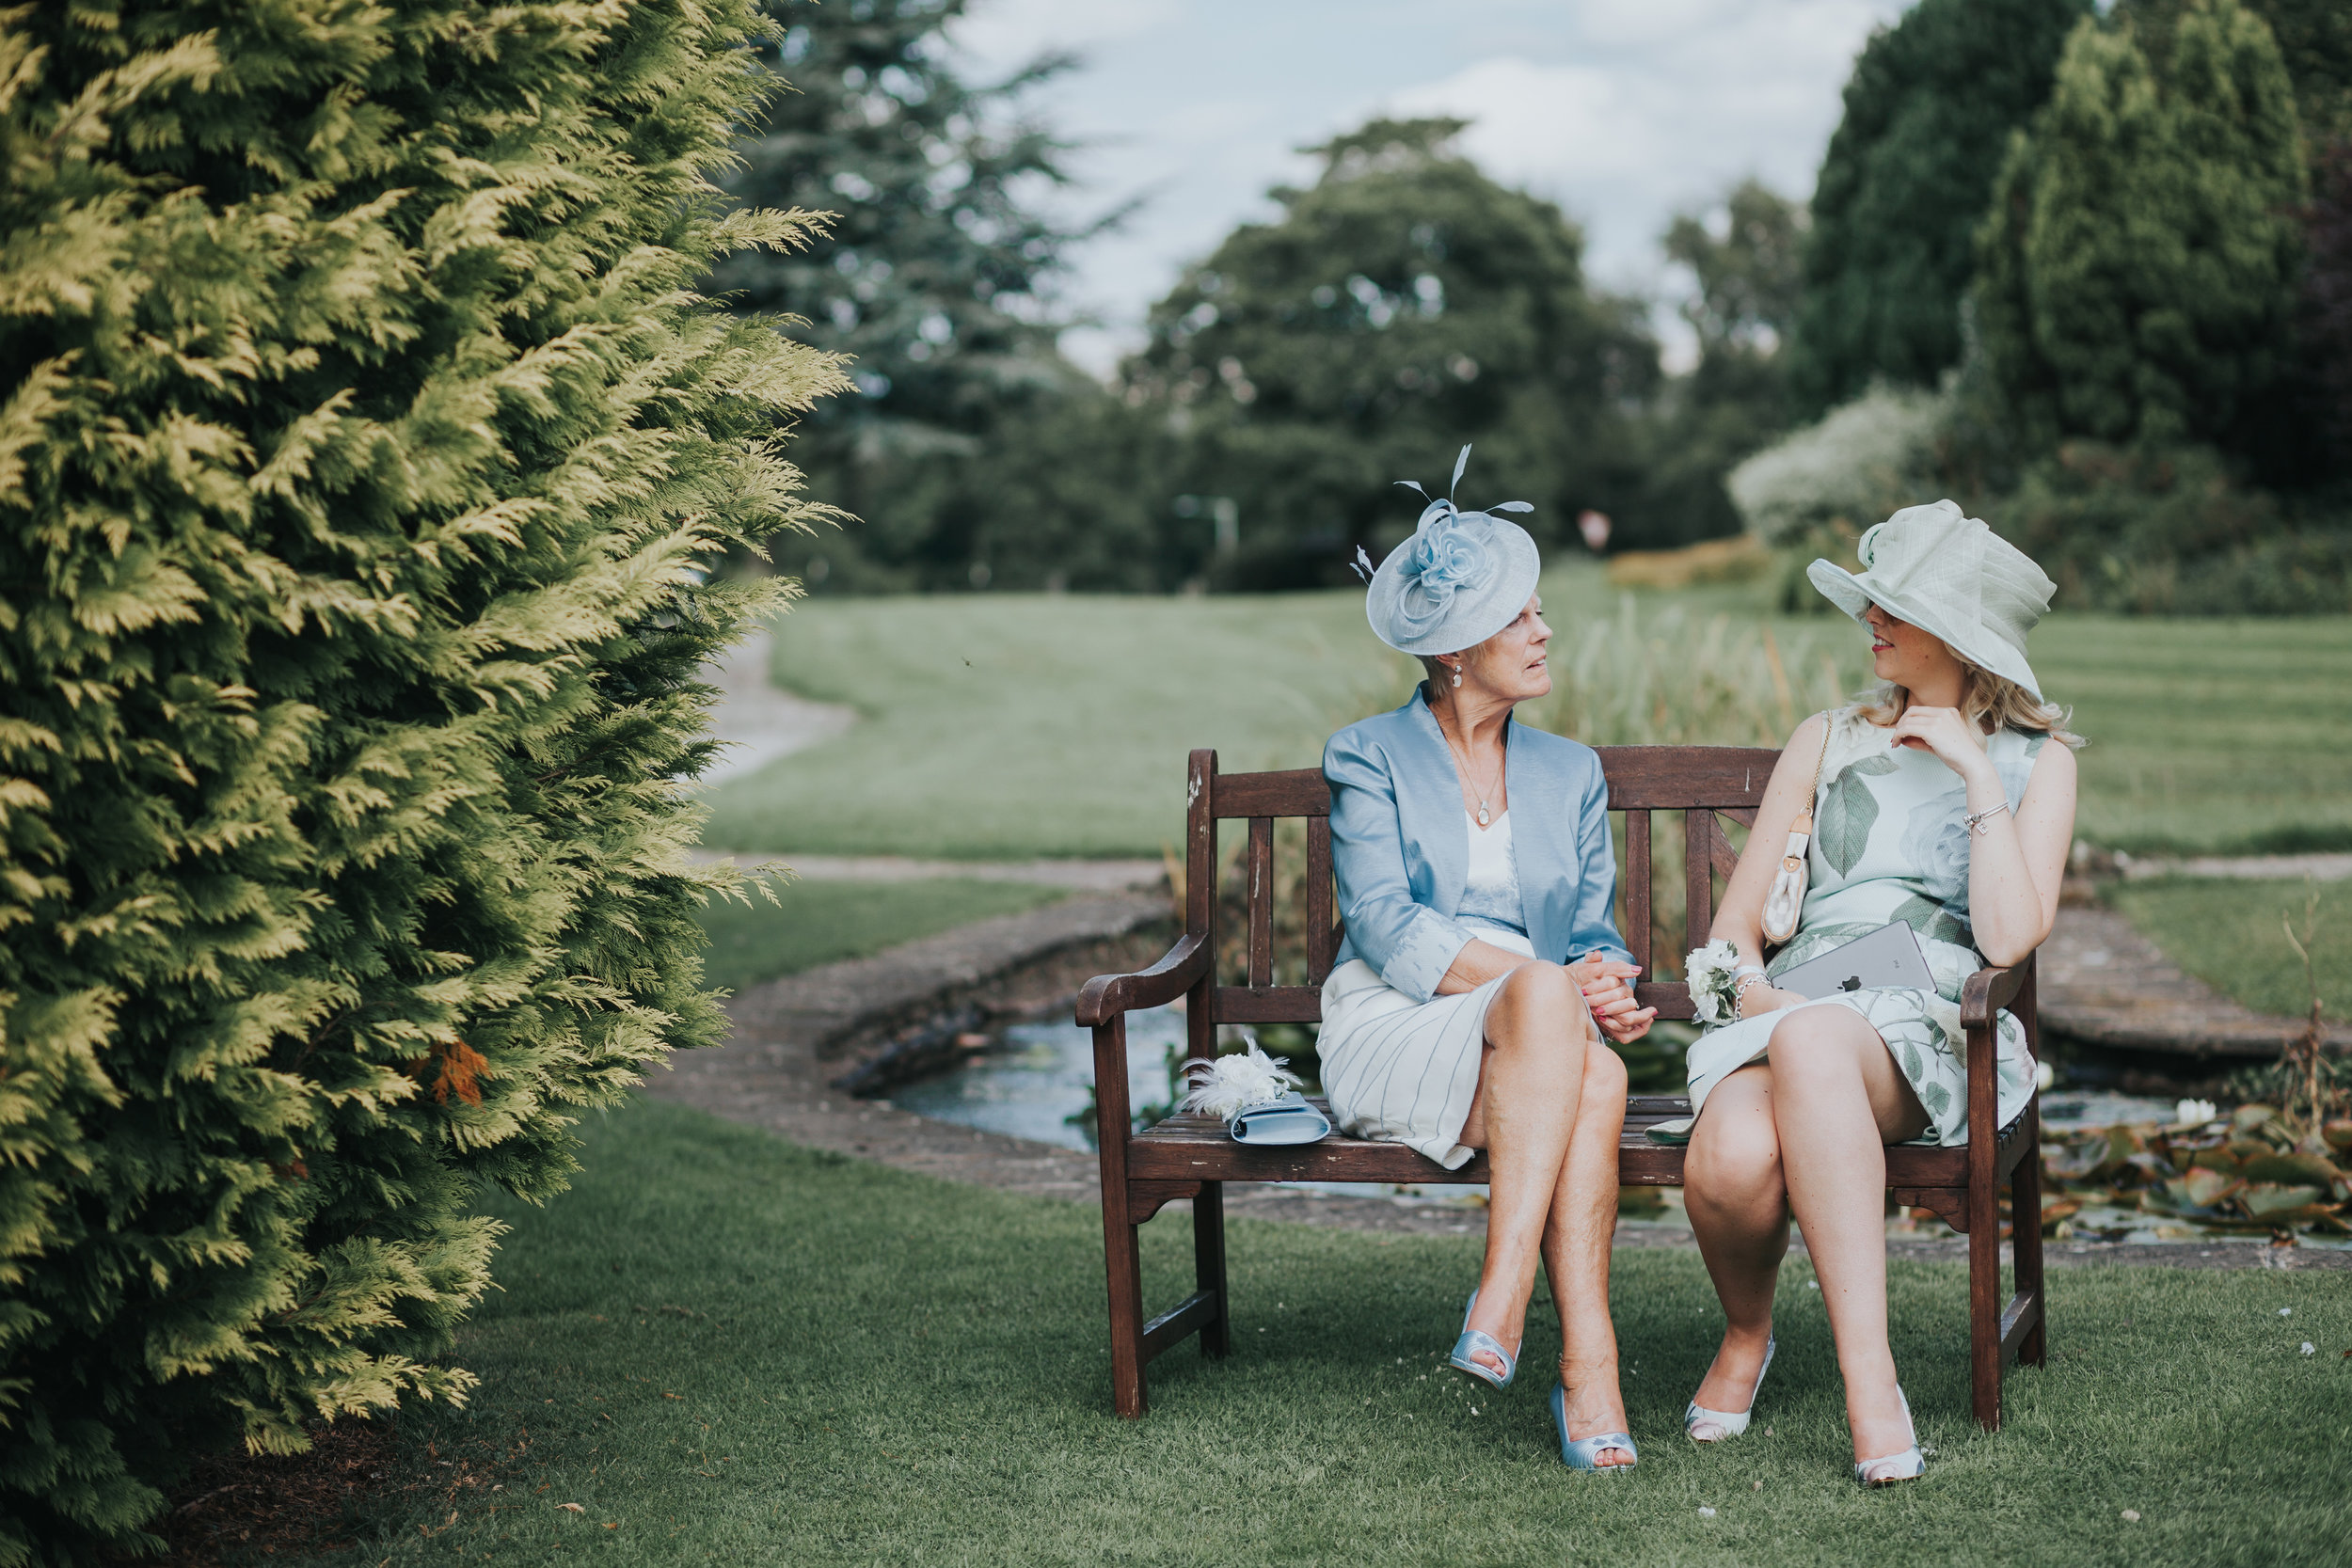 Wedding guests wearing pale green and blue outfits and hats sit together on the bench at Mytton Fold.